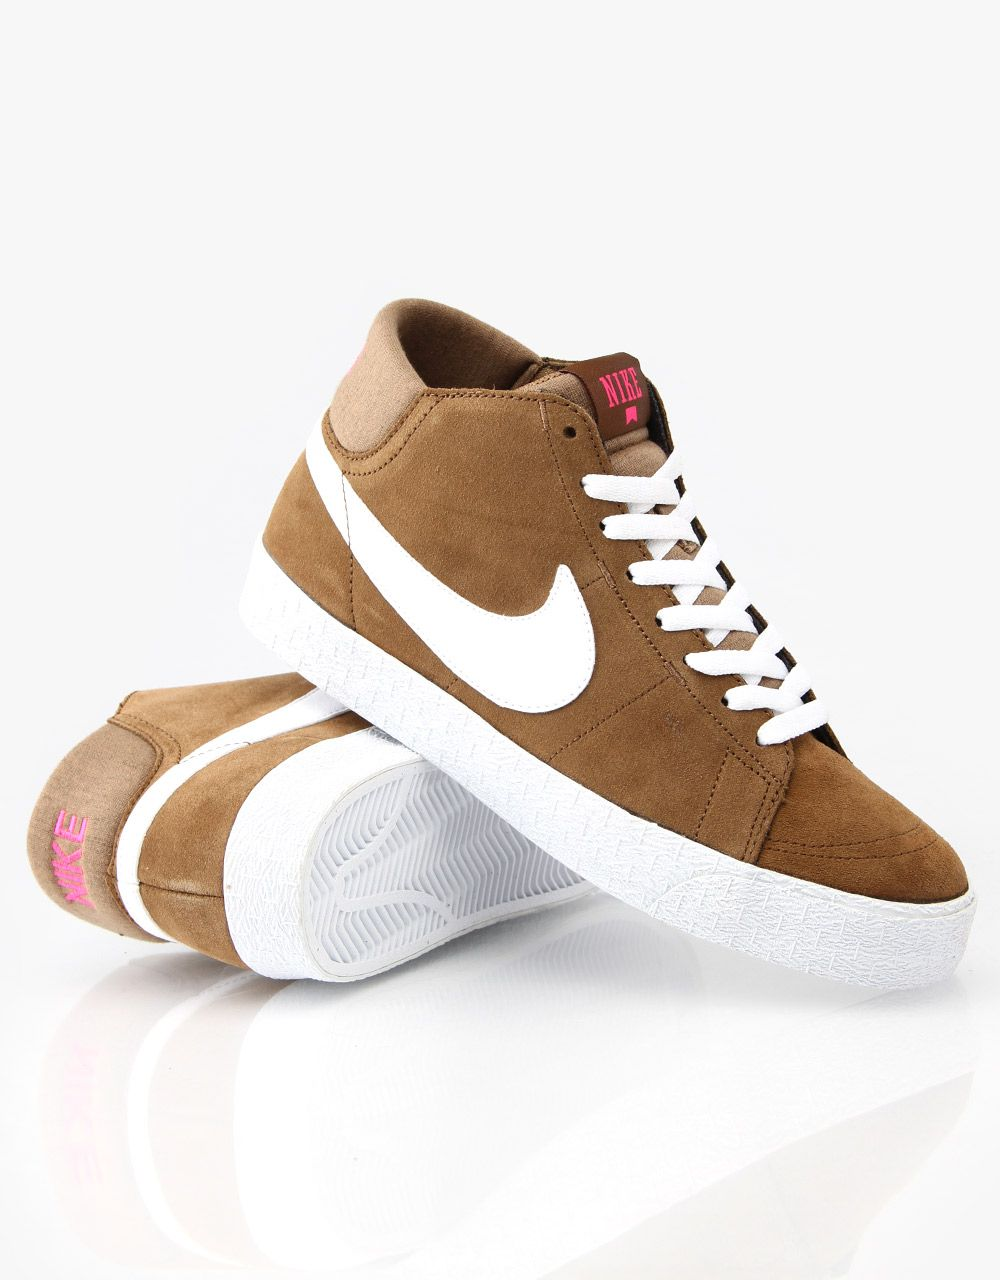 huge selection of 934cd 14c2a Nike SB Blazer Mid LR Skate Shoes - Military BrownWhitePink Foil -  RouteOne.co.uk